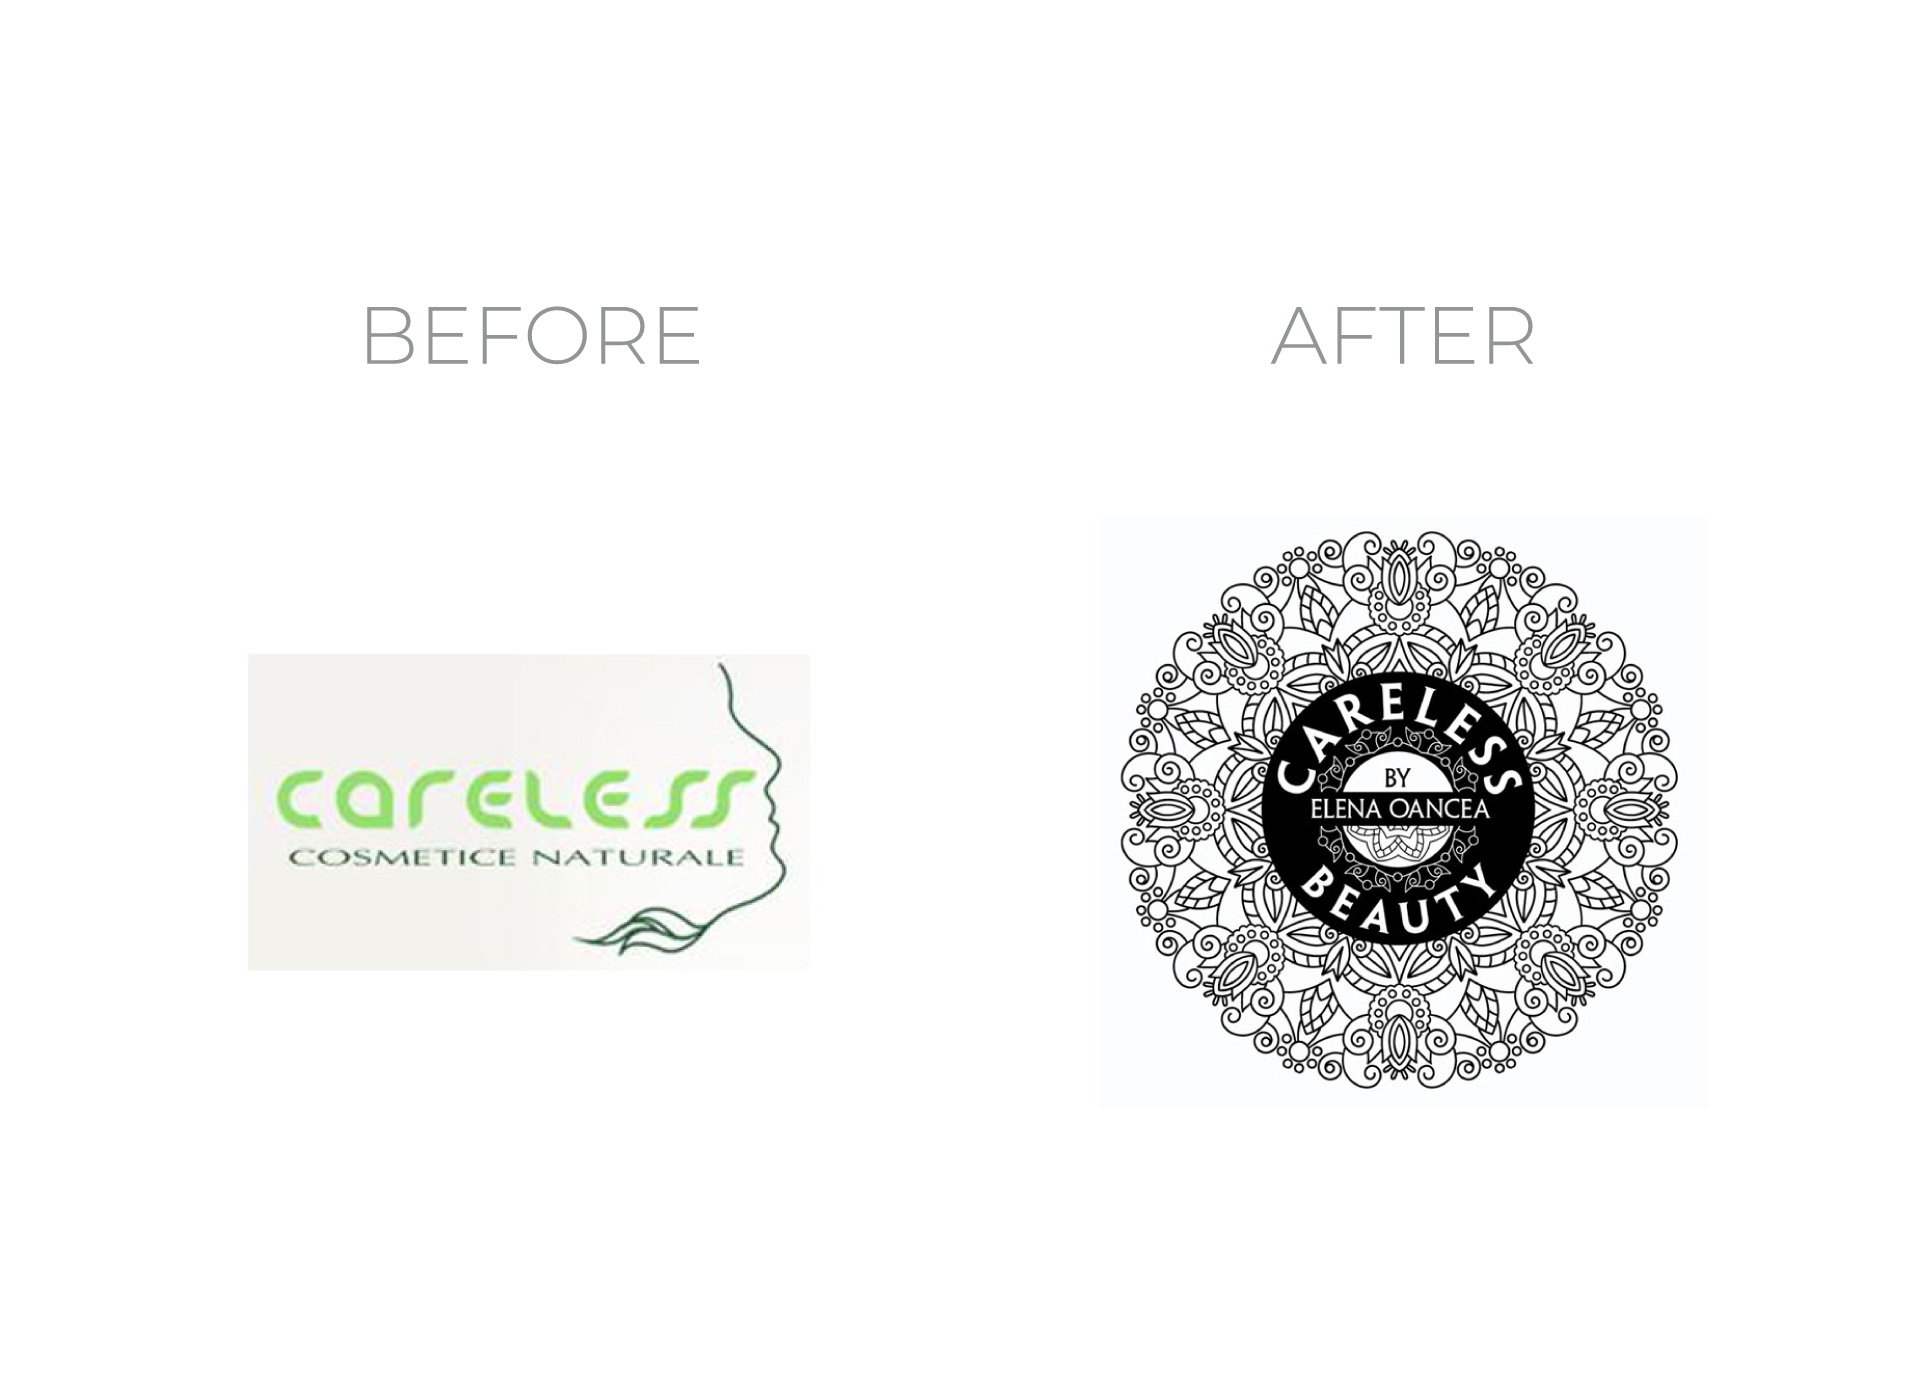 careless beauty portfolio inoveo before and after rebranding